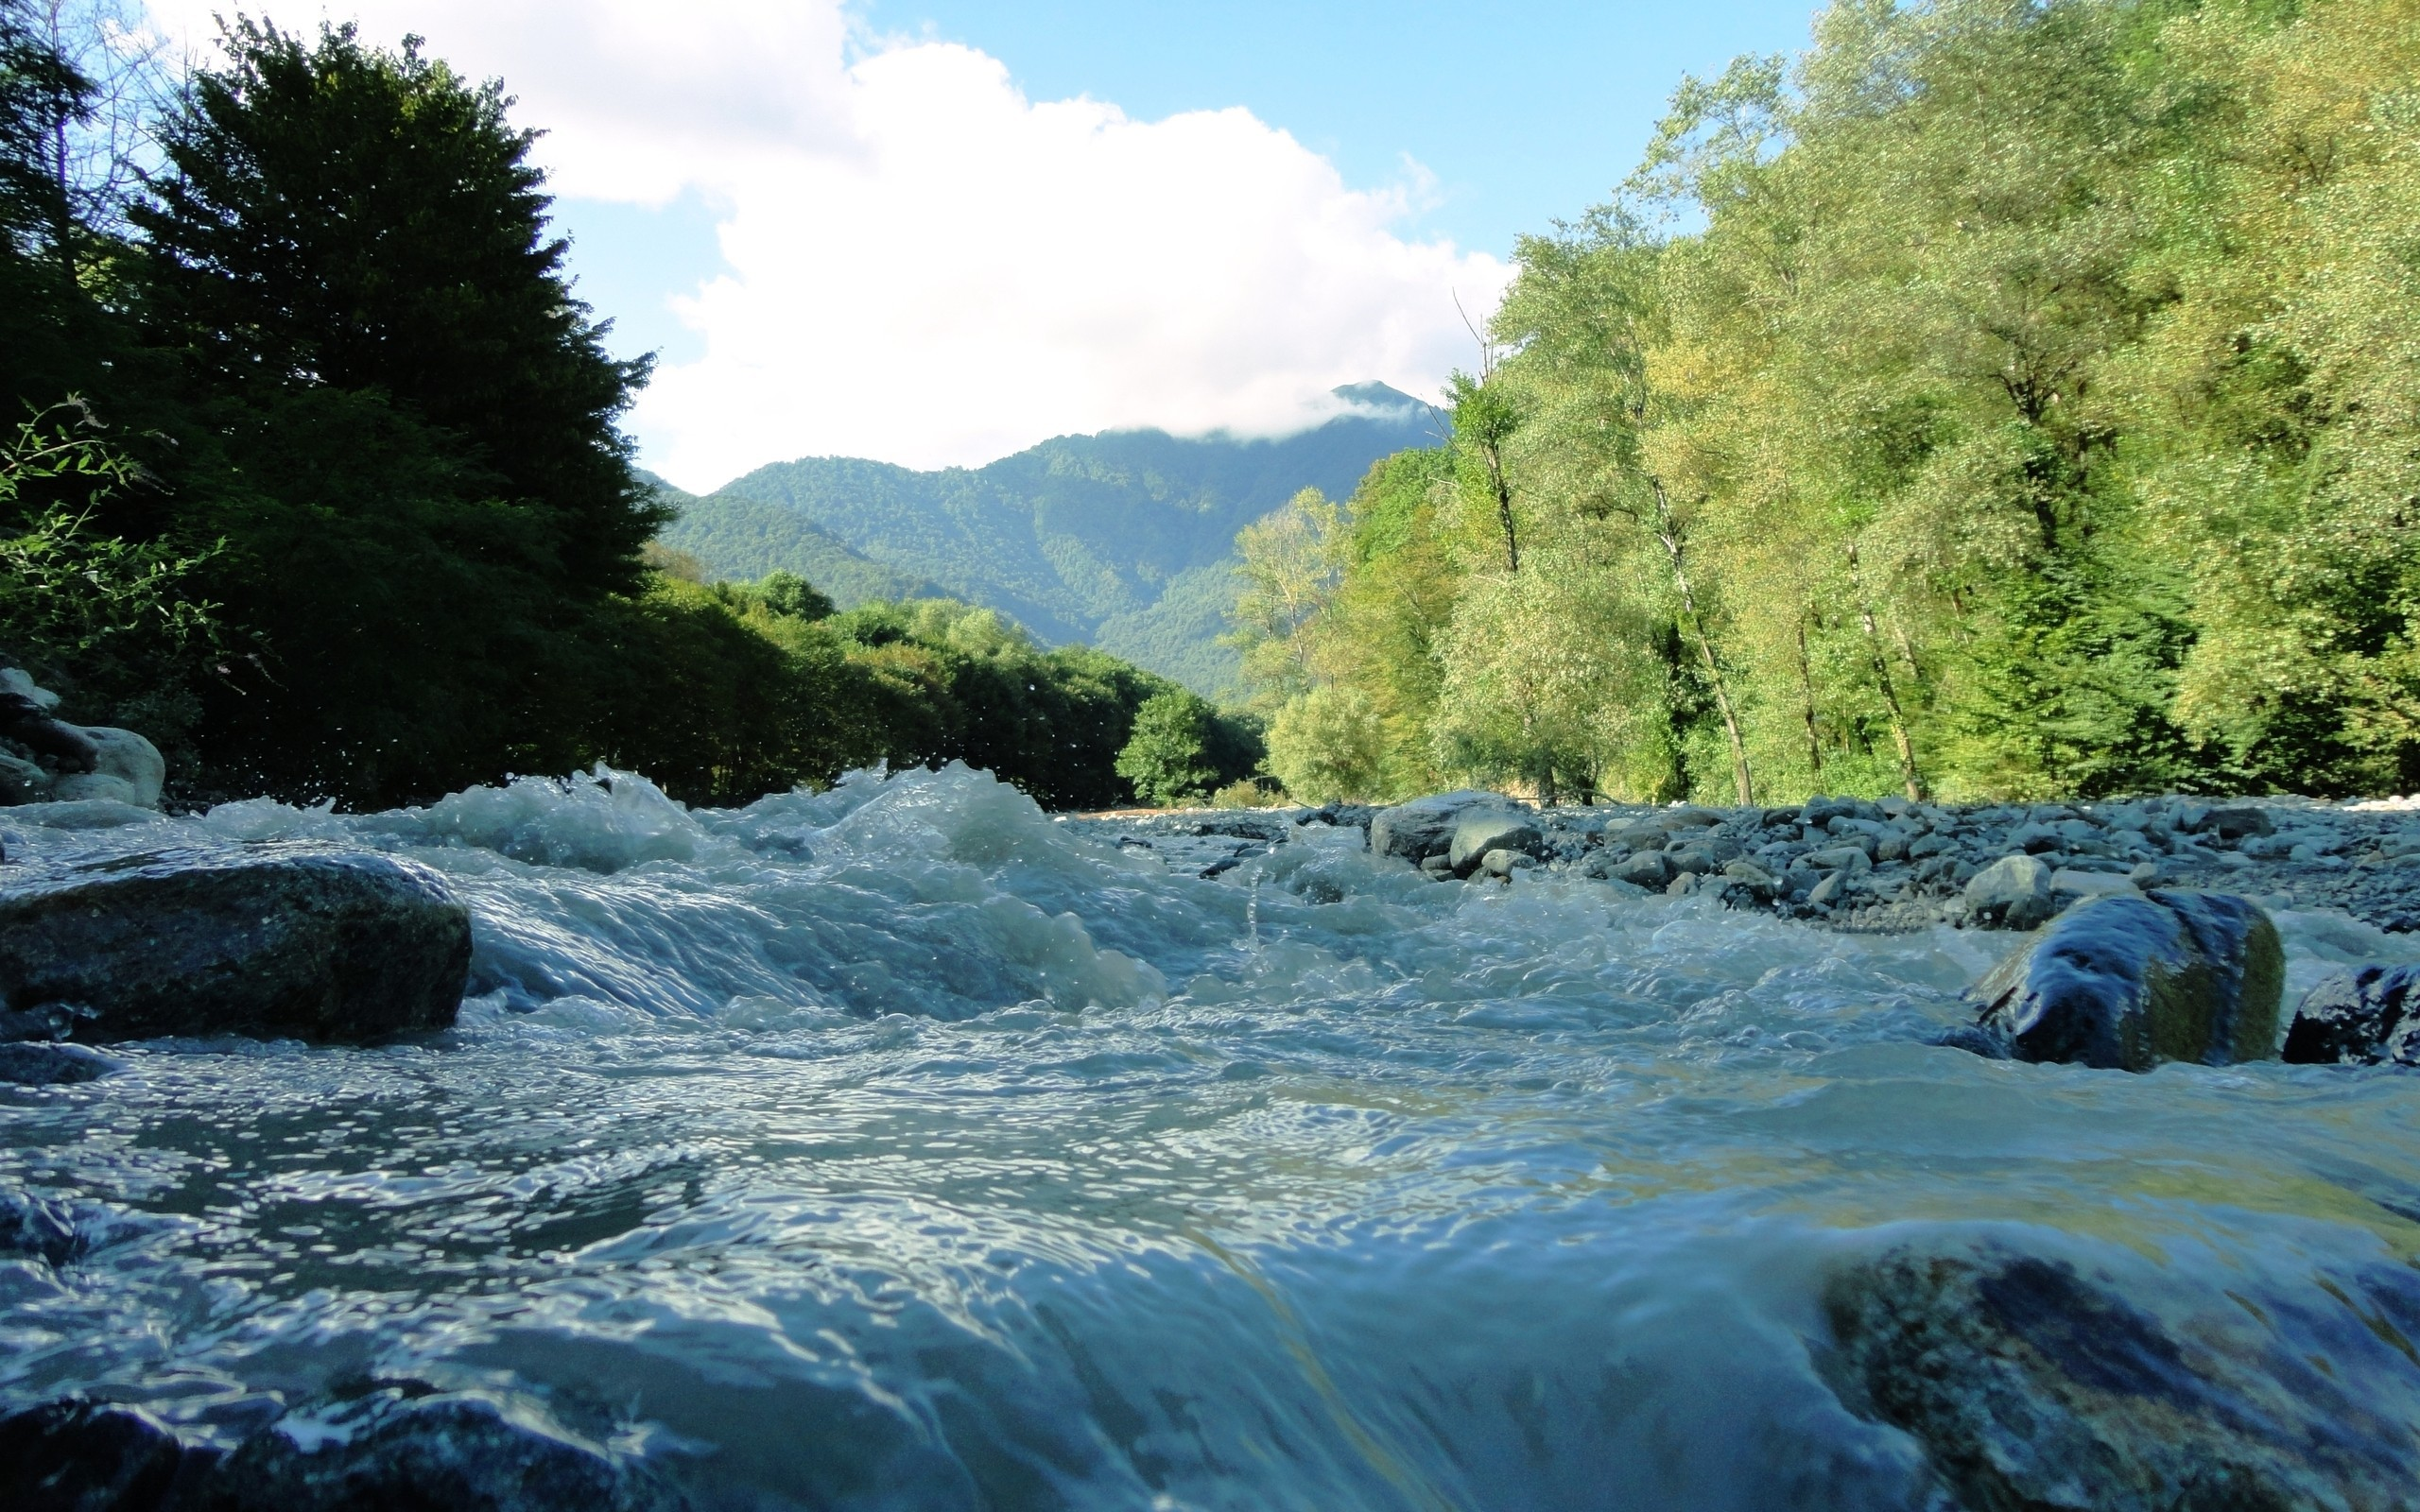 flowing river wallpaper - photo #16